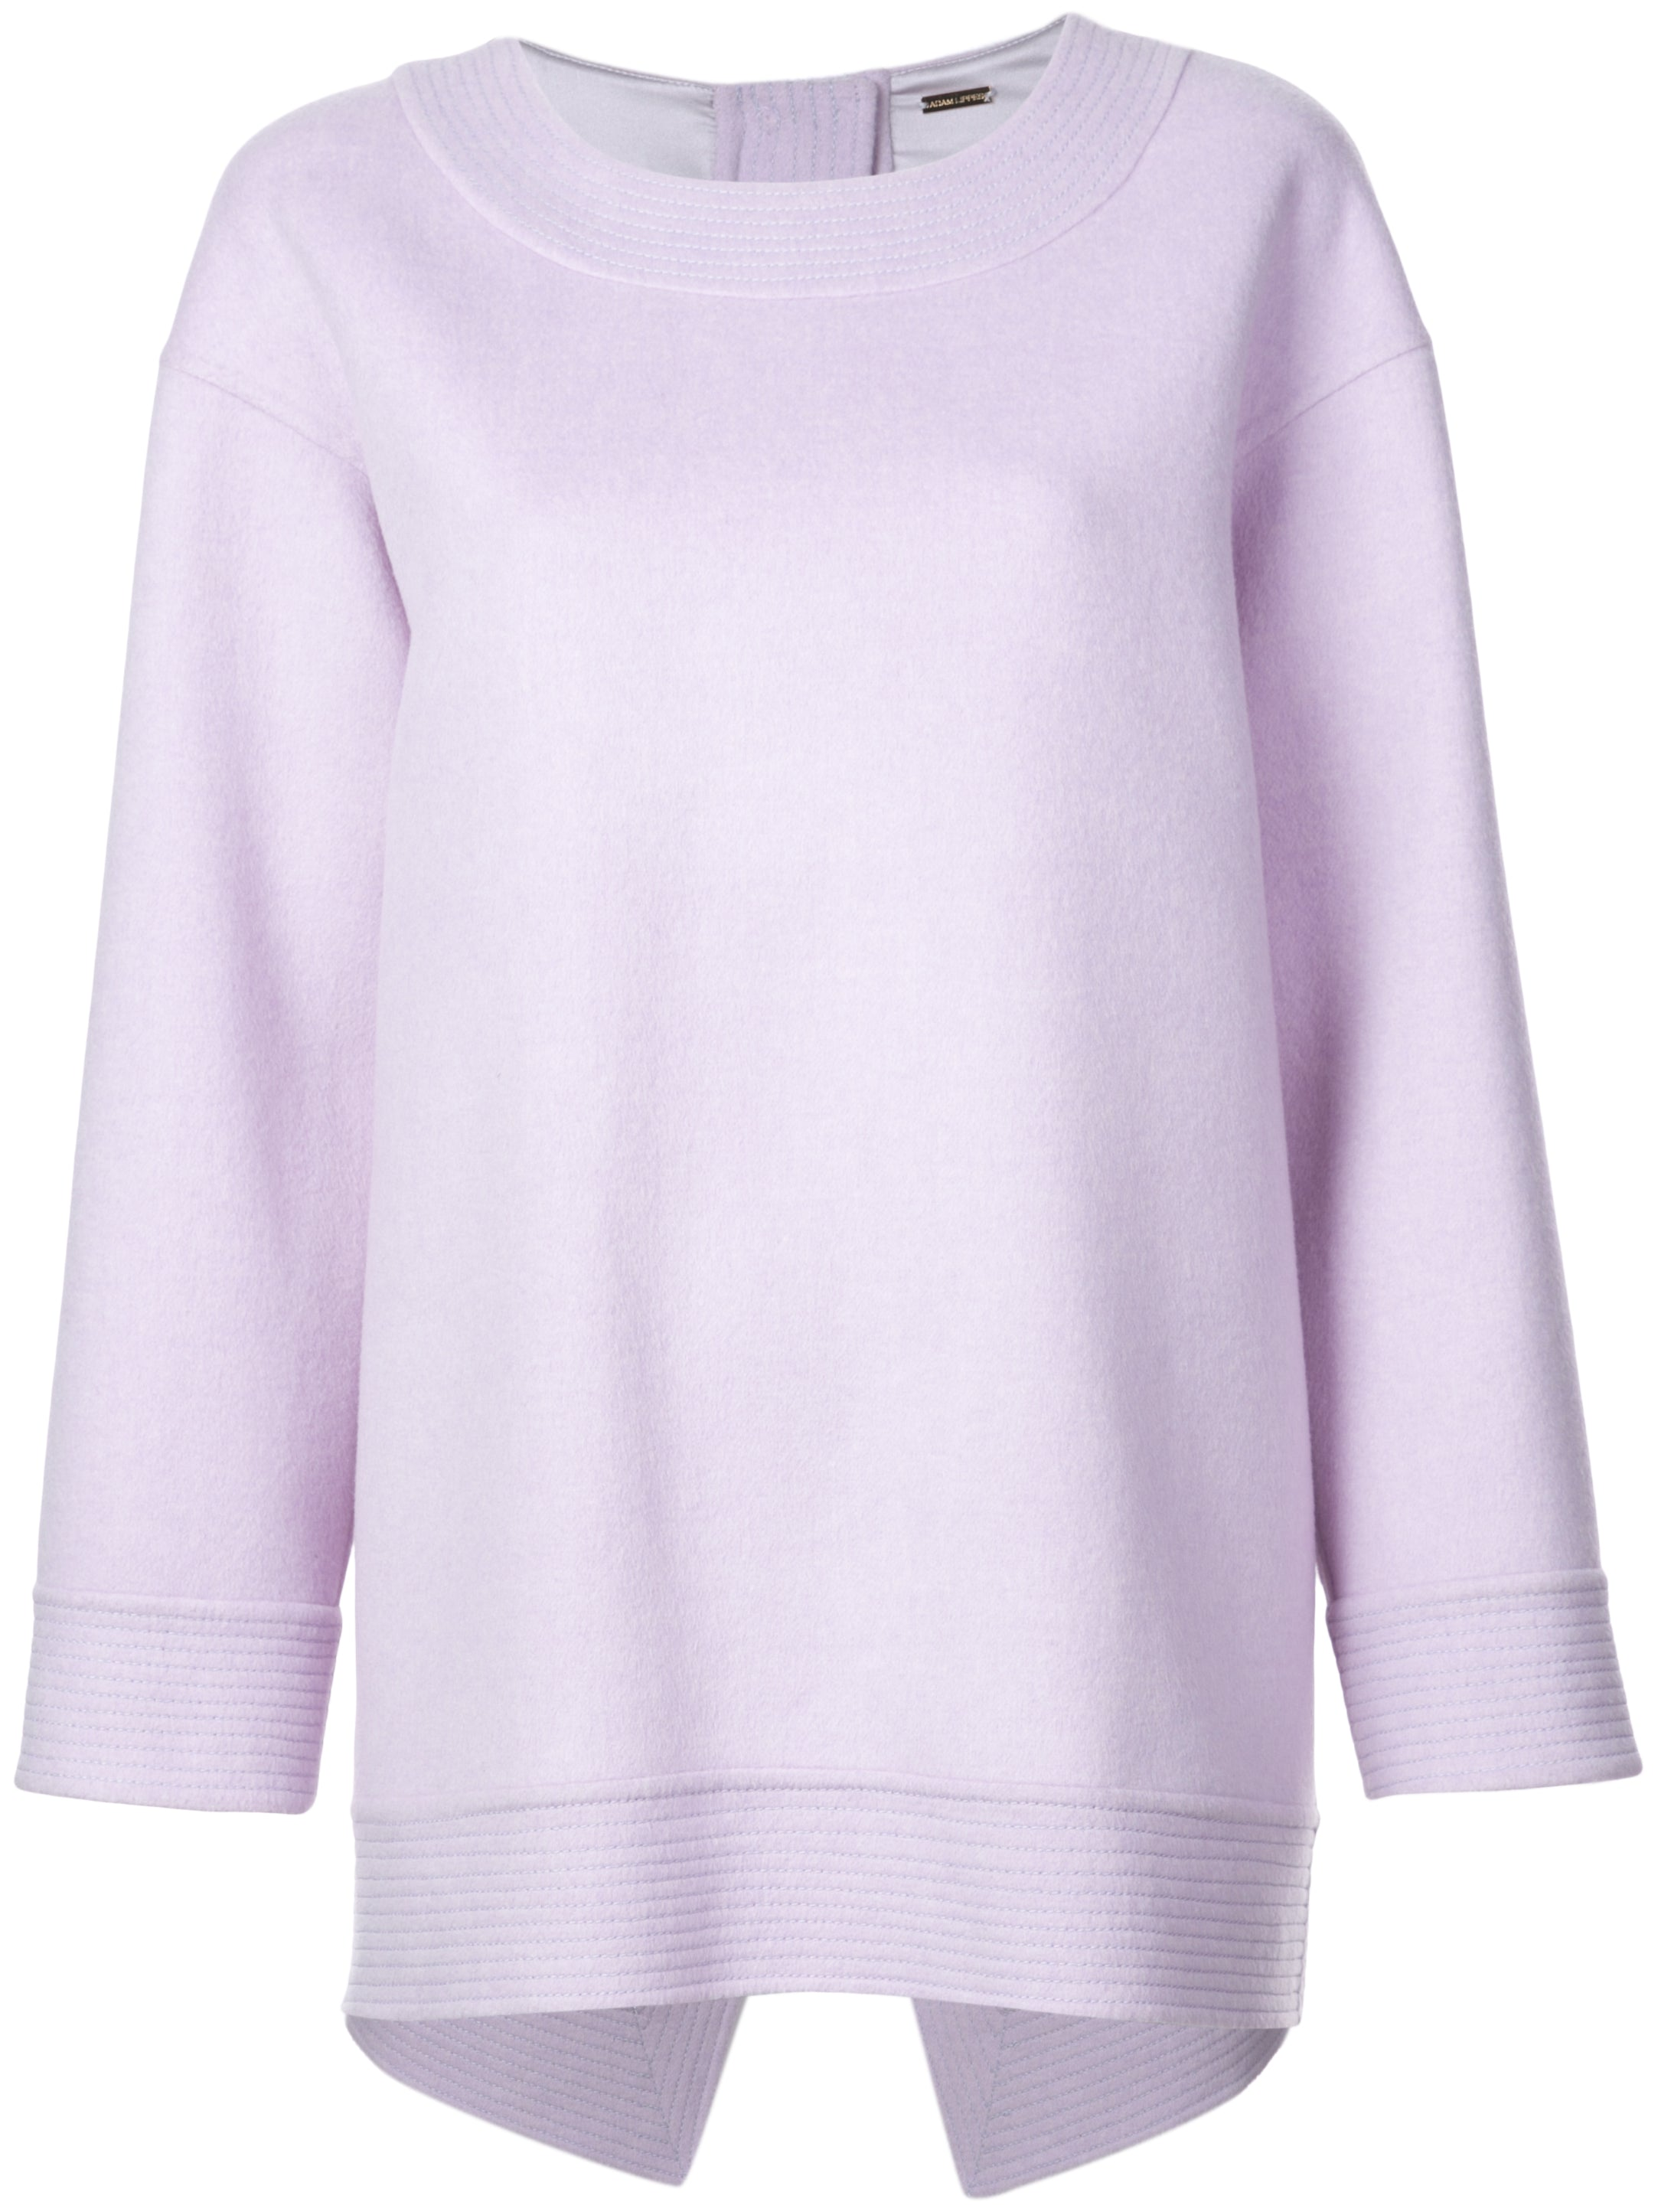 ANGORA WOOL SWEATSHIRT WITH CROSS BACK